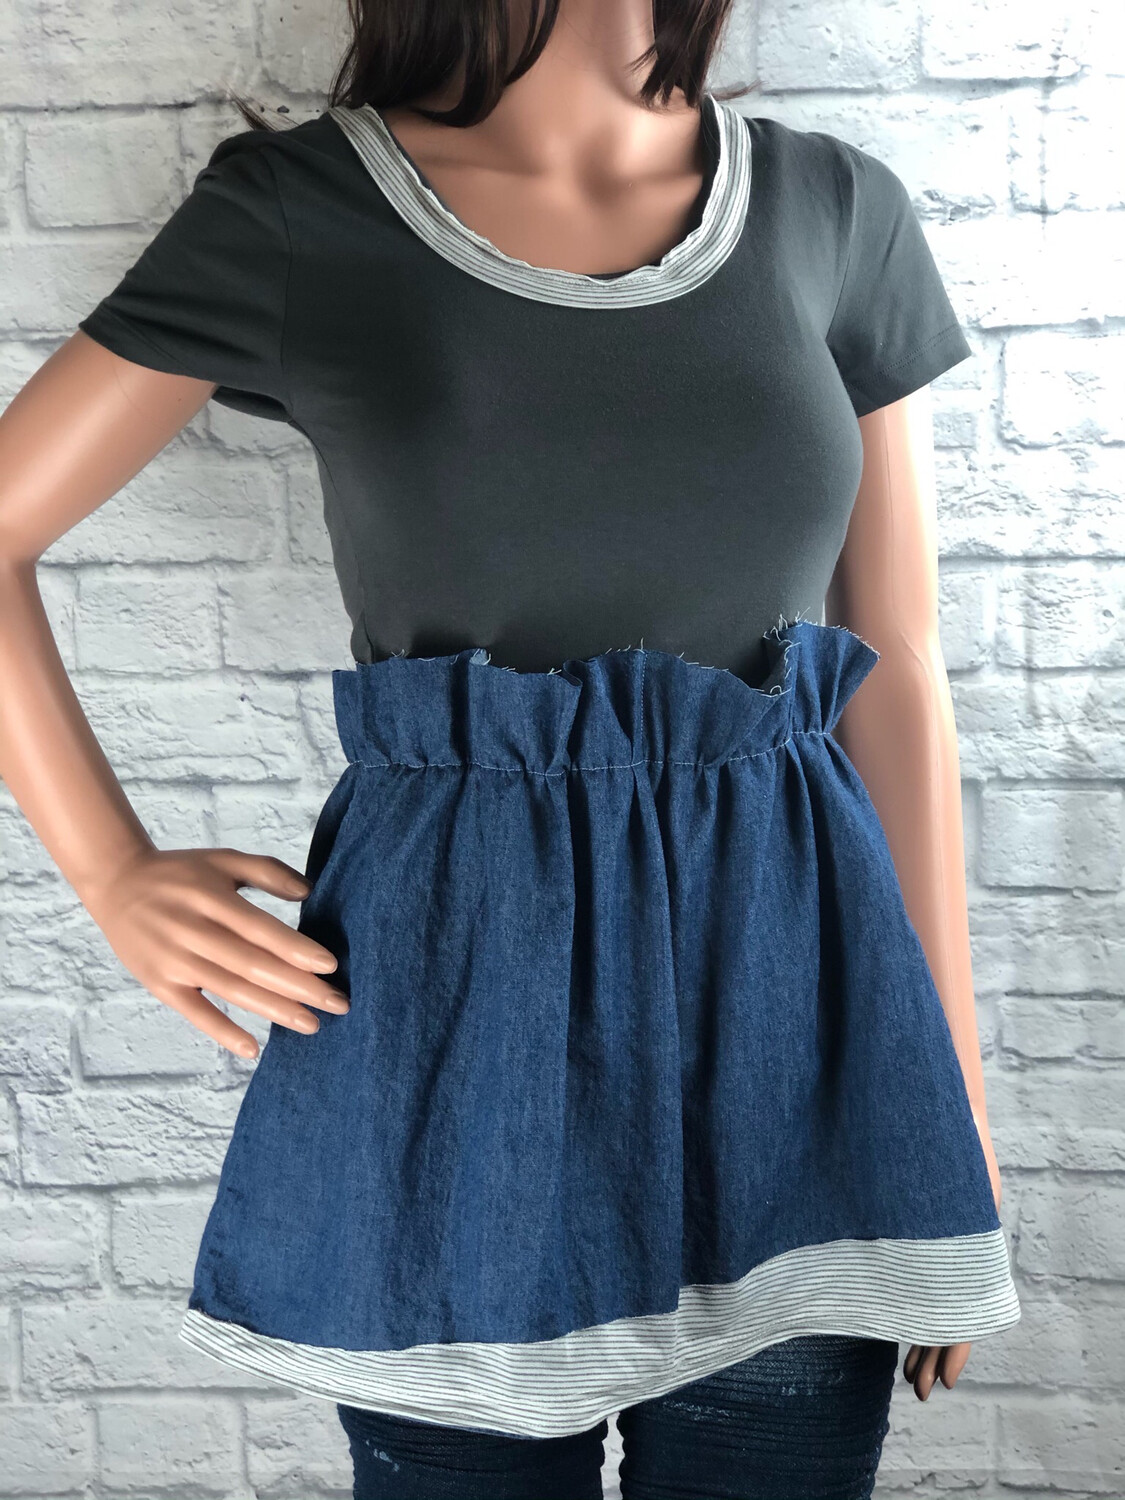 S Threads Upcycled Top Peplum Jean Tee Size S / M